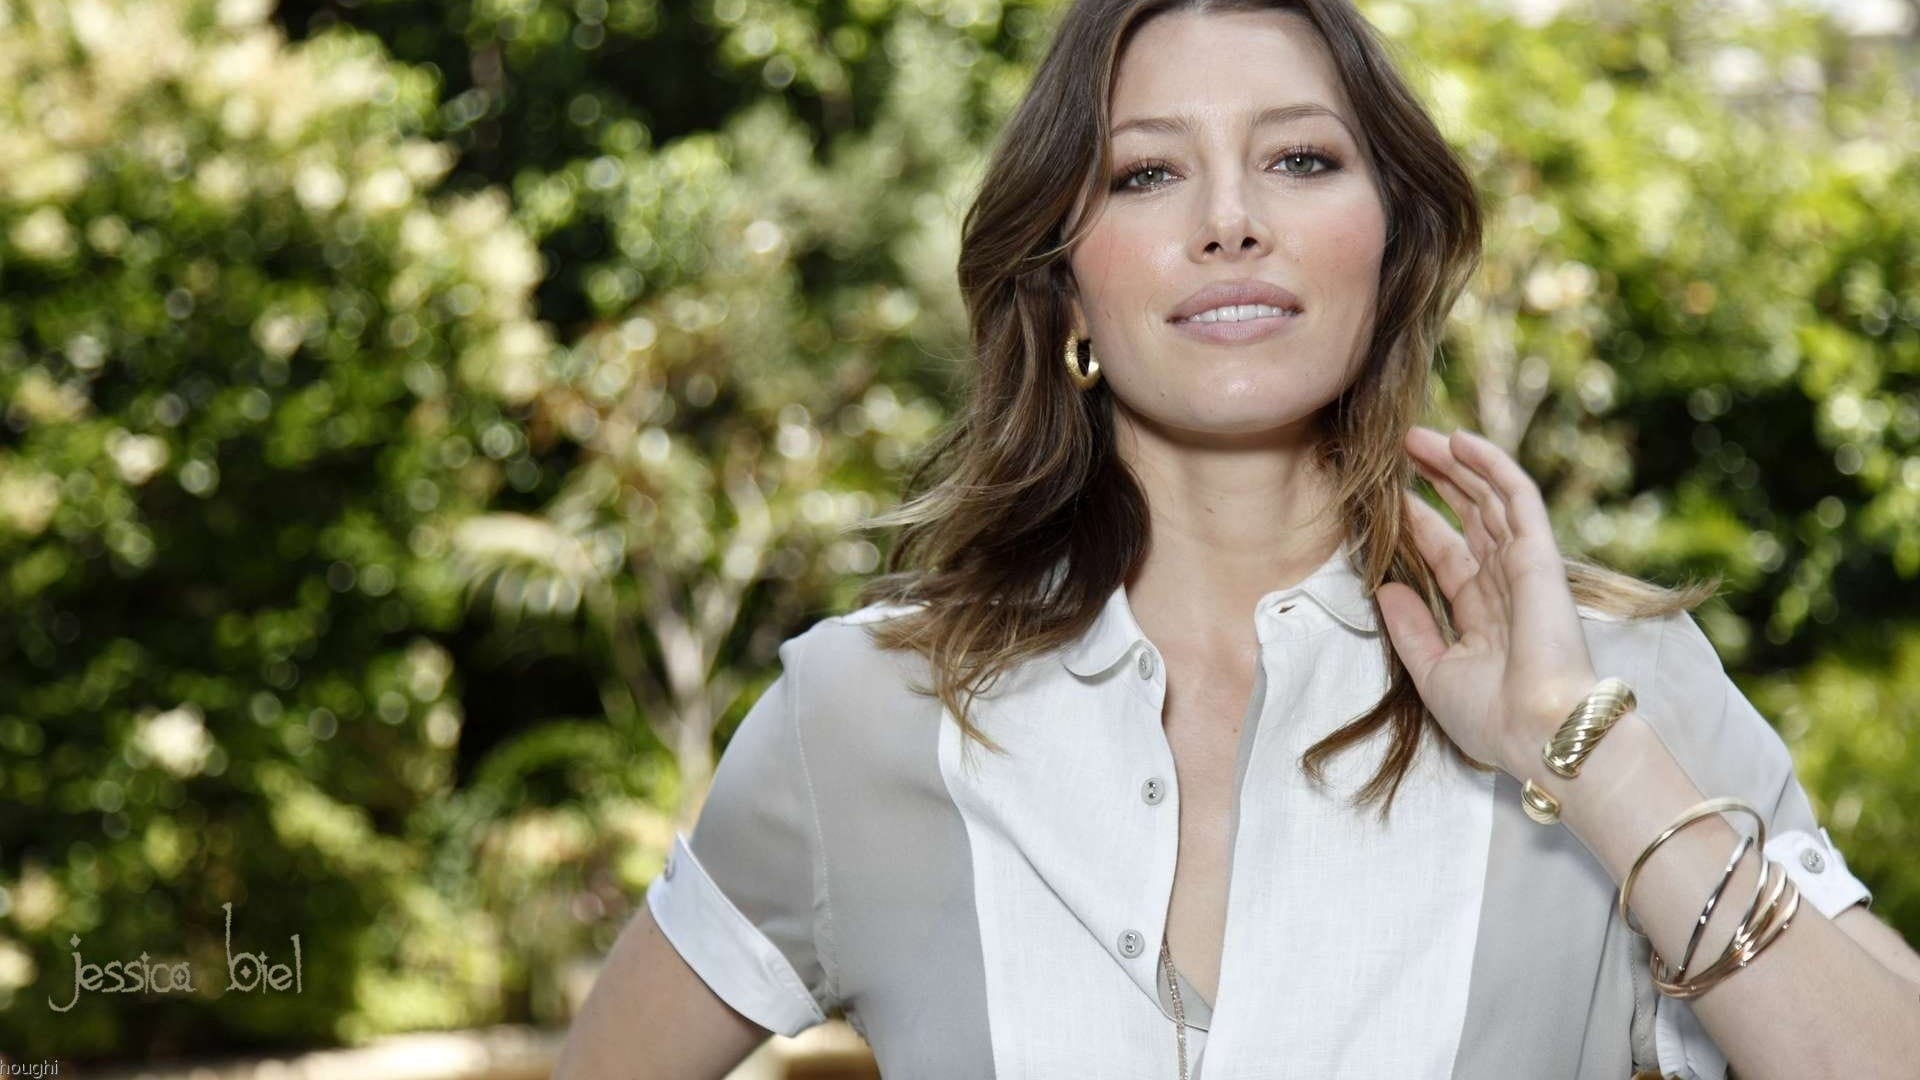 Jessica Biel full hd wallpapers